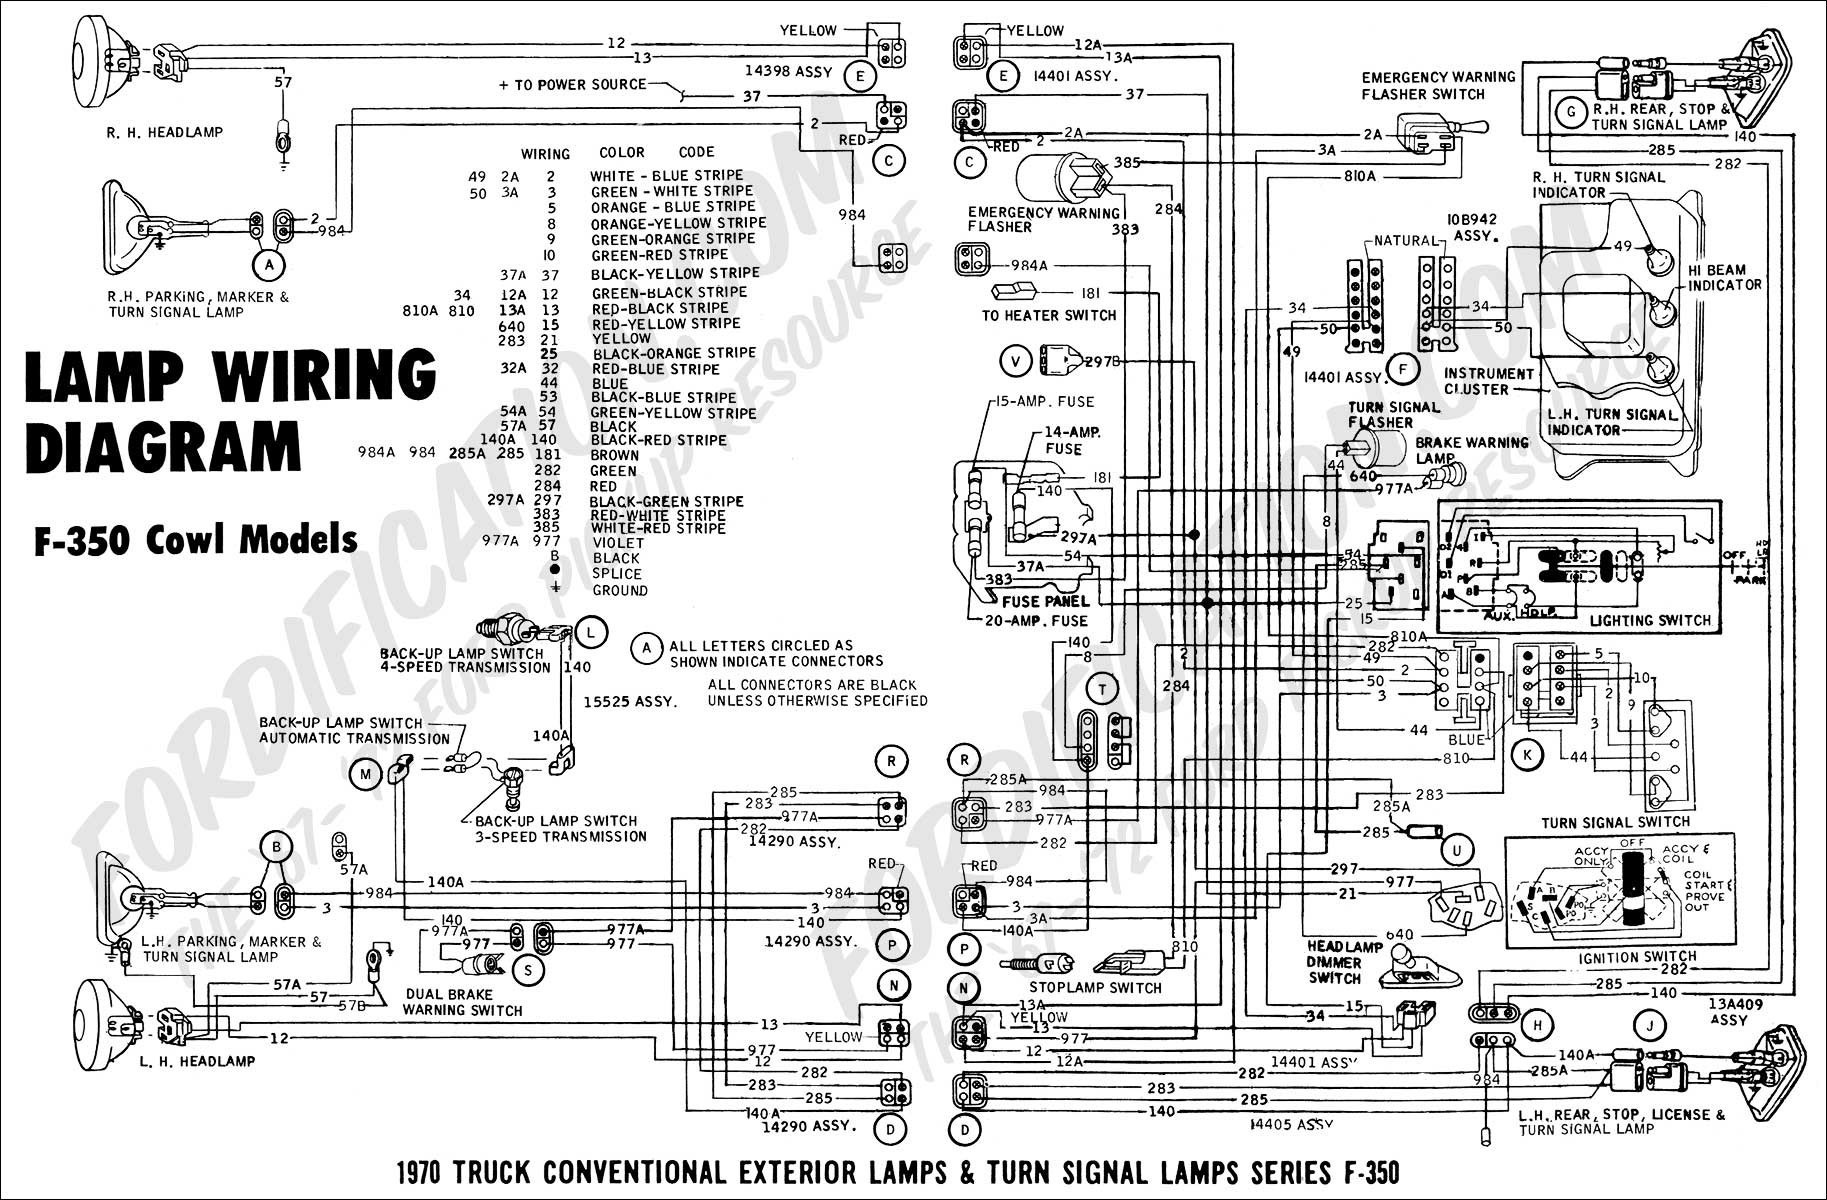 62AF6 1999 Ford F 350 Wiring Diagrams | Digital Resources on 1999 ford f350 fuse diagram, ford f-350 4x4 wiring diagrams, 2005 dodge grand caravan wiring diagrams, 2005 chrysler pt cruiser wiring diagrams, 2008 saturn aura wiring diagrams, 1999 ford f350 super duty, 2000 nissan pathfinder wiring diagrams, 2000 chevrolet impala wiring diagrams, 2006 dodge ram 1500 wiring diagrams, 2000 ford f-350 wiring diagrams, 1999 ford windstar wiring diagrams, 2007 chevrolet tahoe wiring diagrams, 1999 ford f-150 wiring diagrams, 1999 ford e-350 wiring diagrams, 2005 ford f-350 wiring diagrams, 1999 ford ranger wiring diagrams, 2008 dodge ram 1500 wiring diagrams,